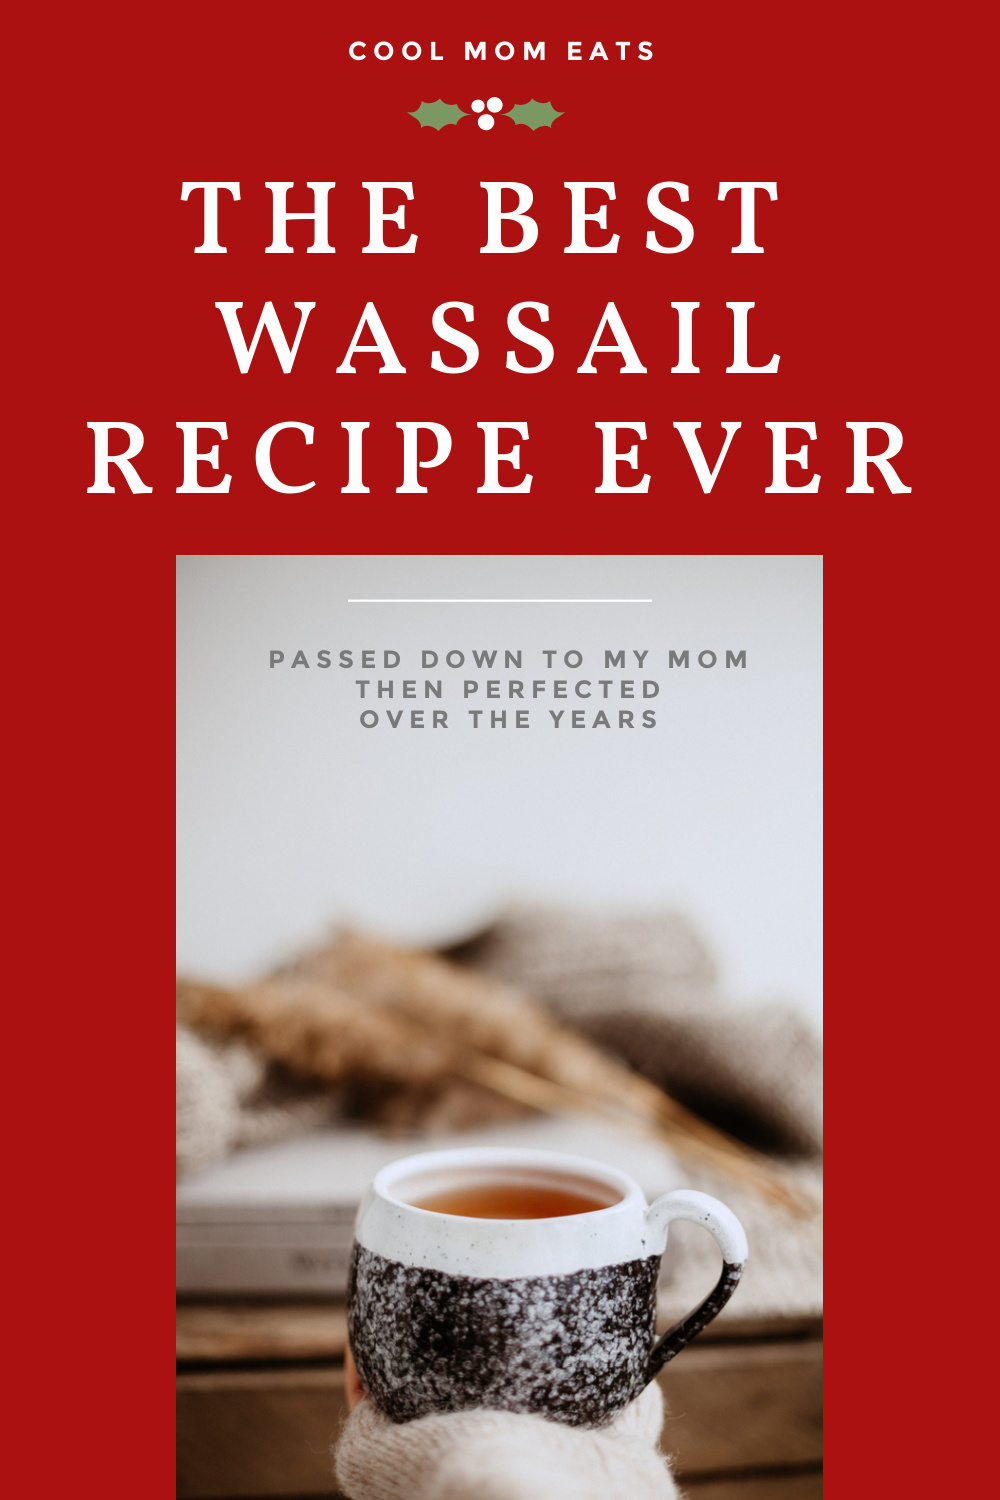 Best wassail recipe, passed down to my mom then refined over the years: by Kate Etue of Cool Mom Eats